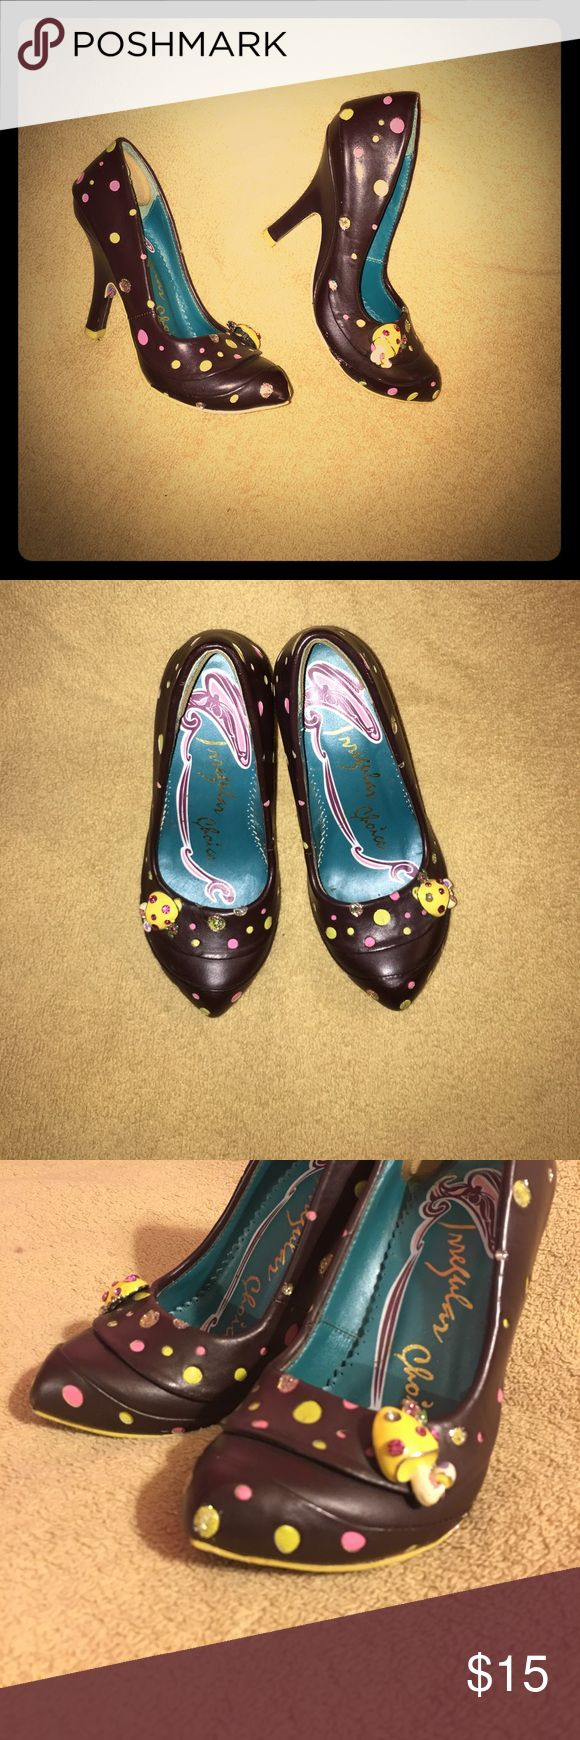 Irregular Choice heels brown leather w/ mushroom Cute irregular Choice heels size 36 (euro) size 6 (USA) polkadots.... soooo cute!! I love the mushrooms attached  irregular Choice Shoes Heels